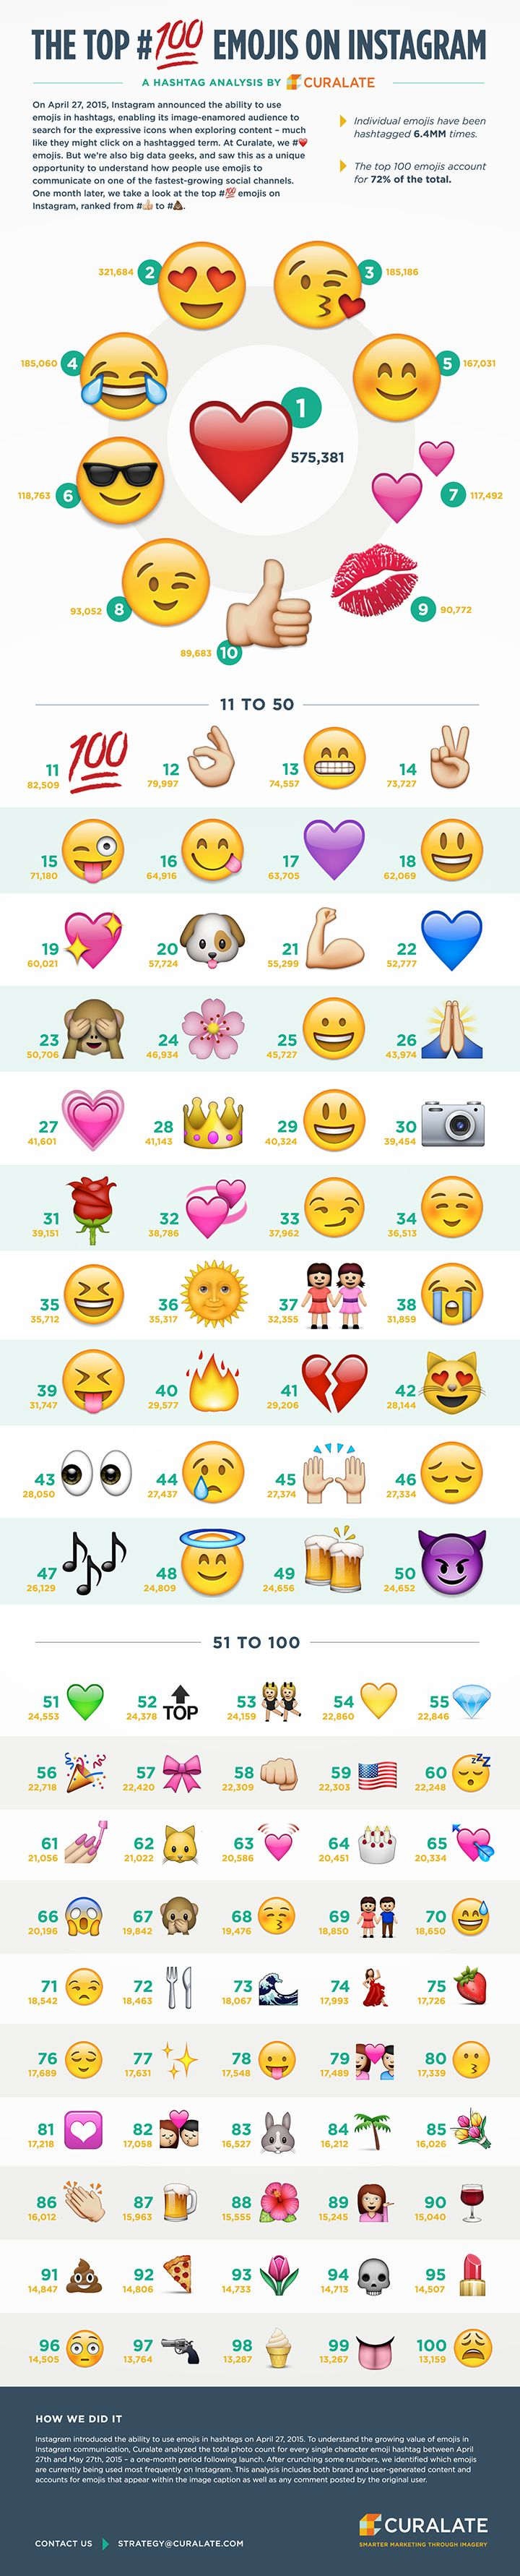 And The Most Enchanting Emoji On Instagram Is Emojis On Instagram Instagram Infographic Infographic